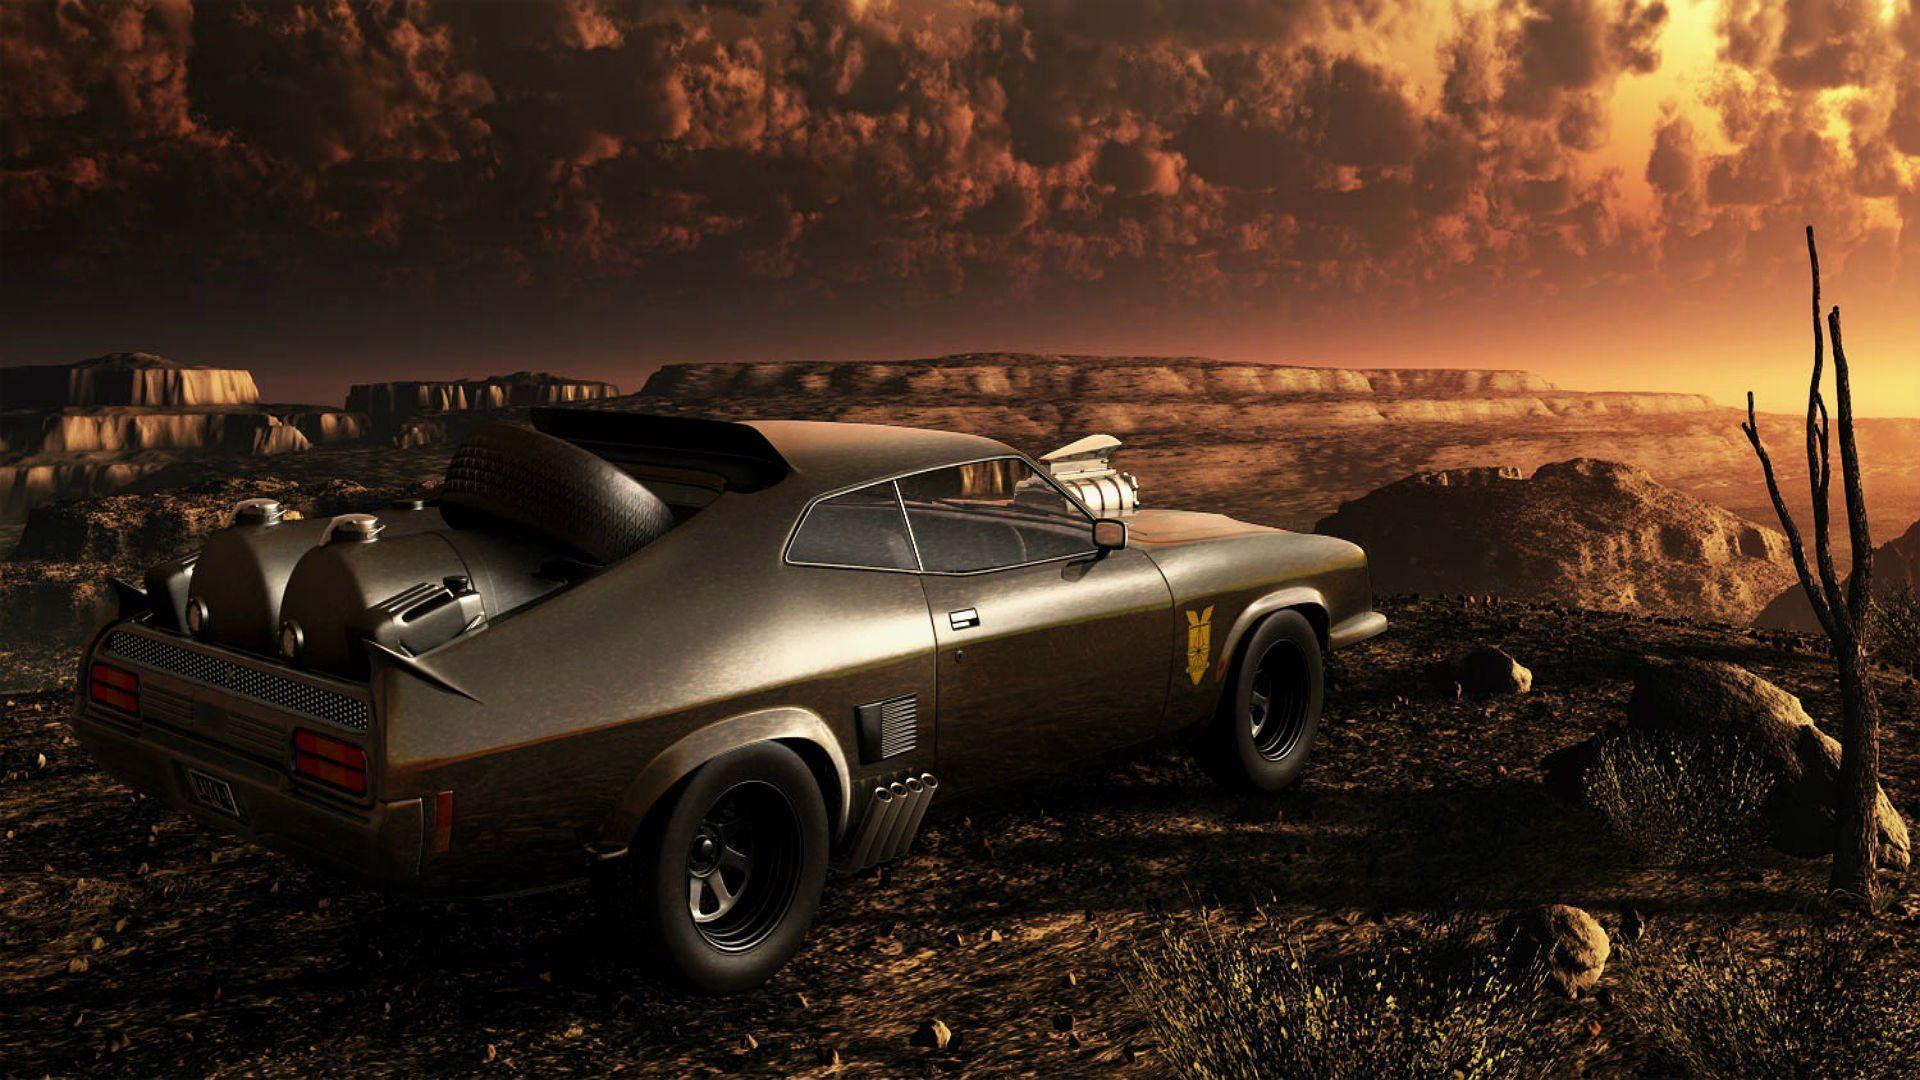 Mad Max Wallpapers - Wallpaper Cave